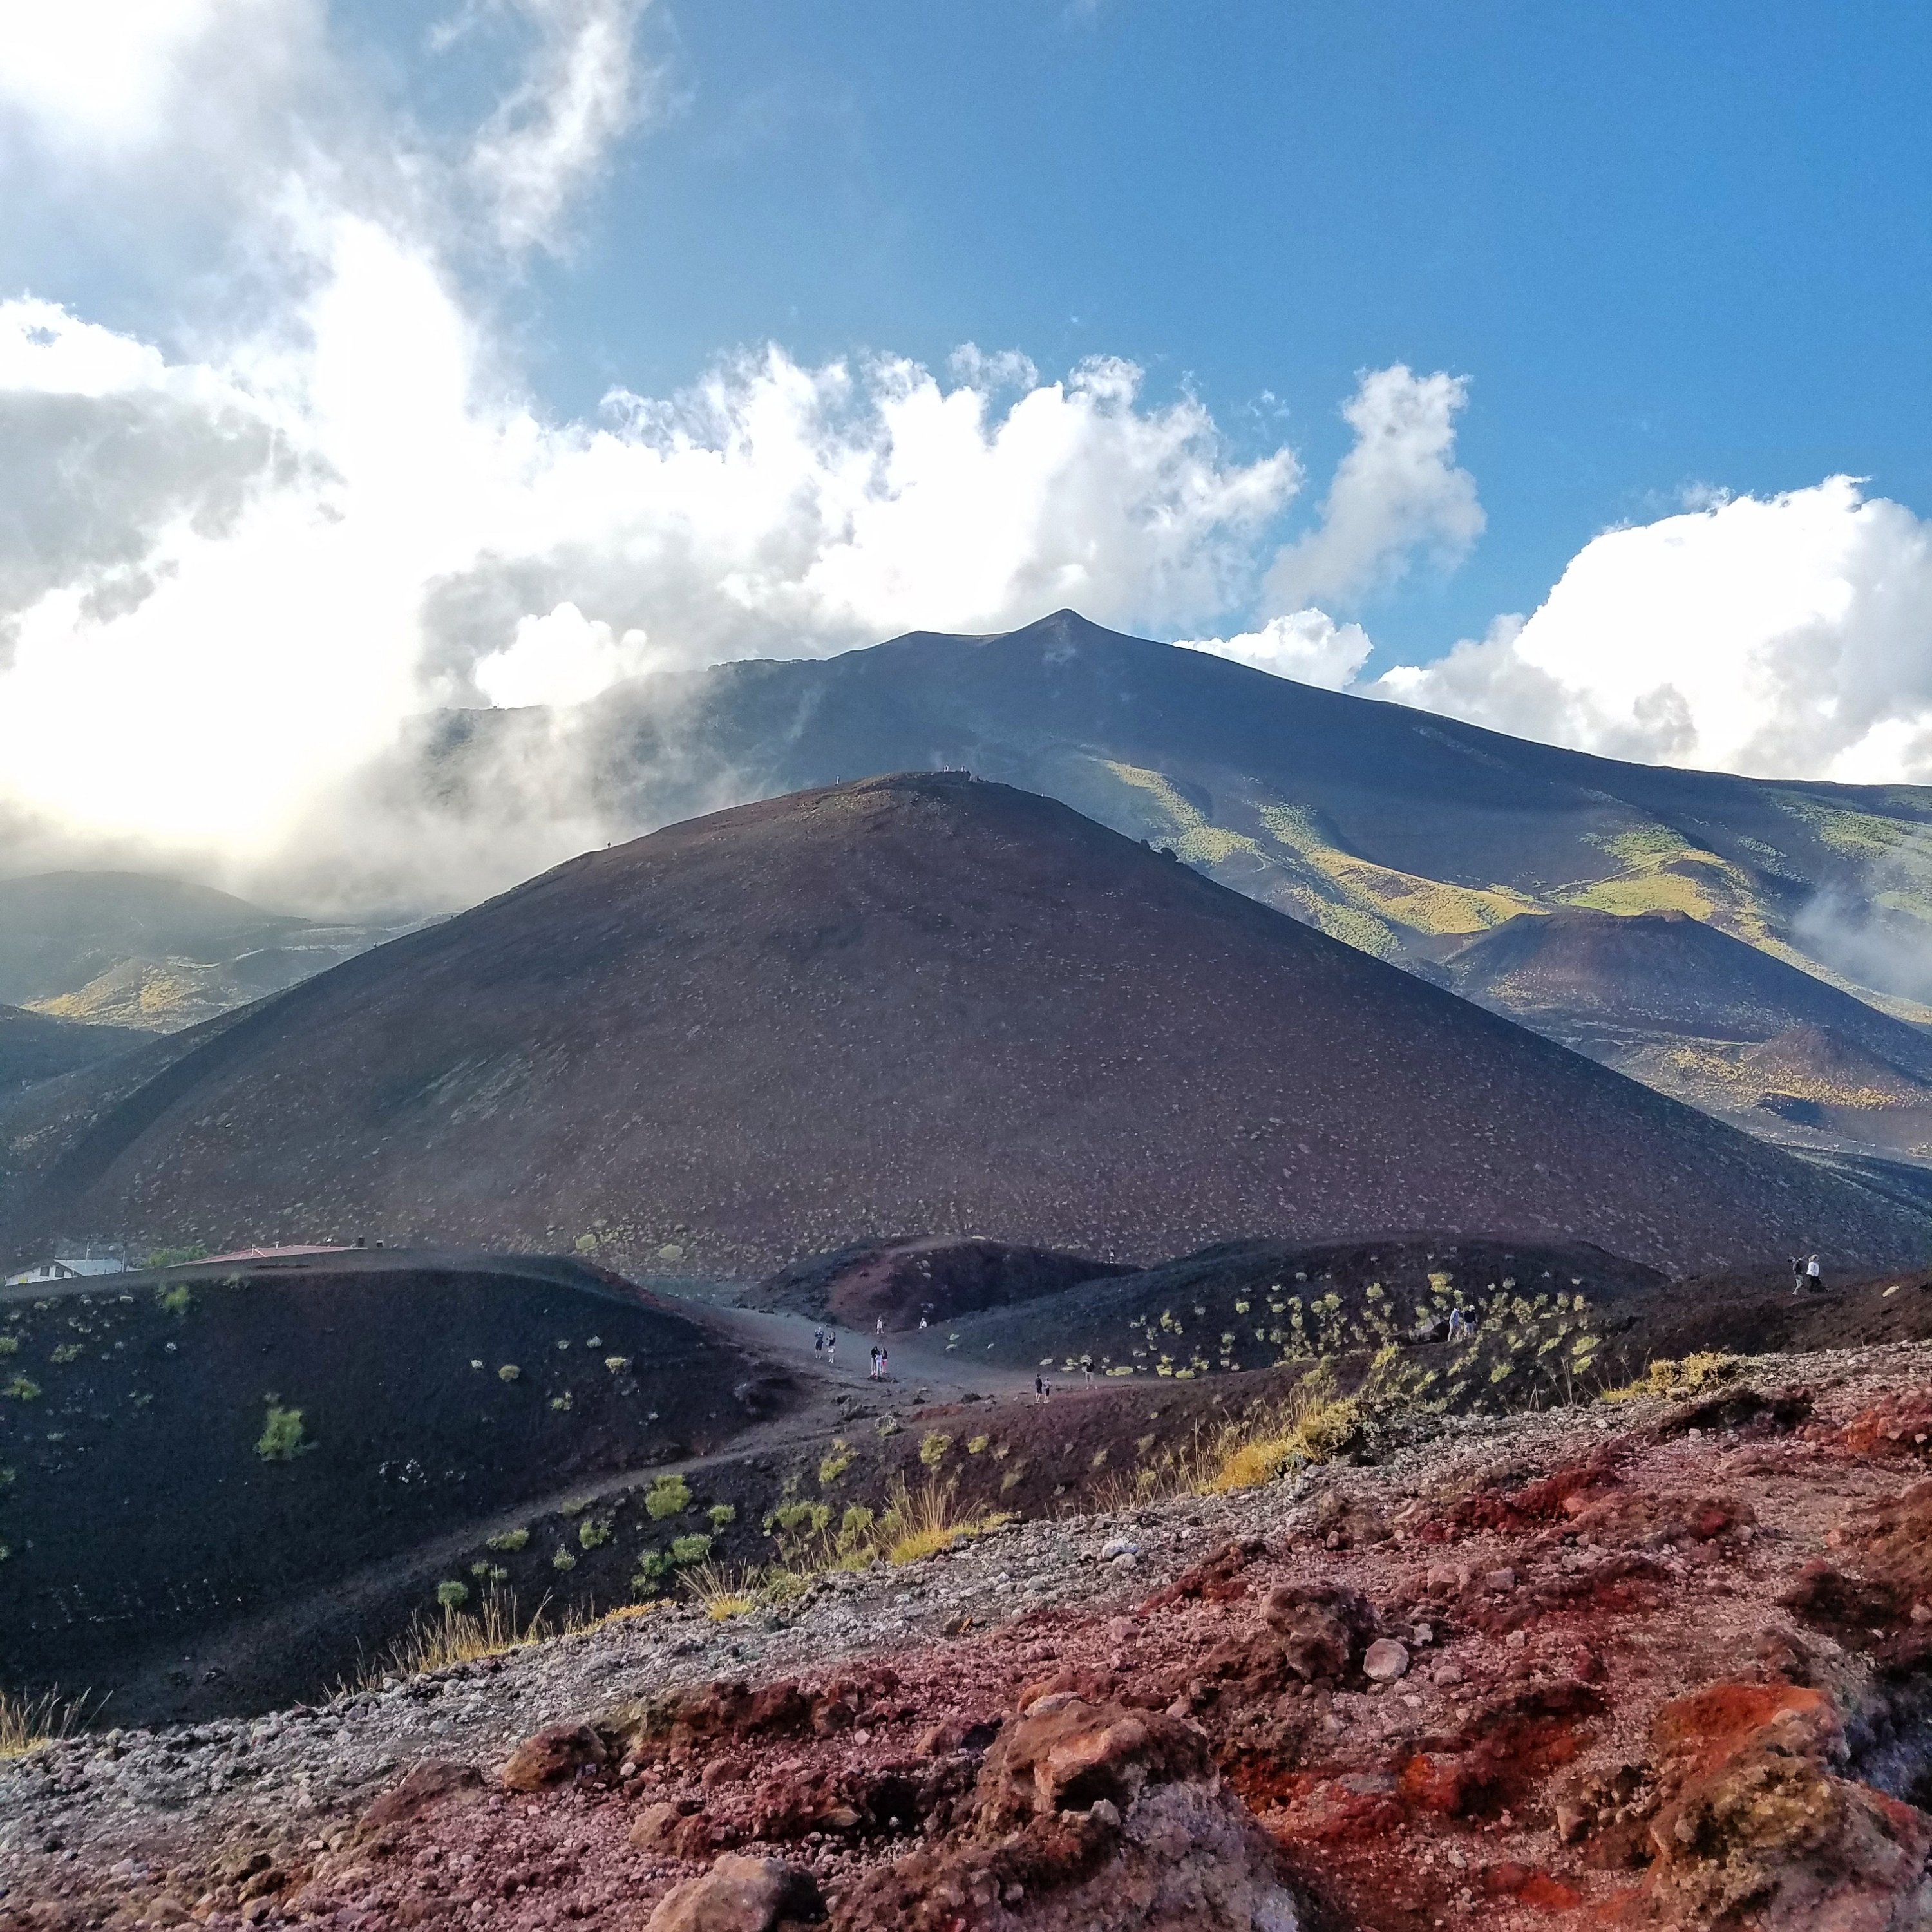 52 Reasons to Love Sicily   #7. Etna Shows Her Power